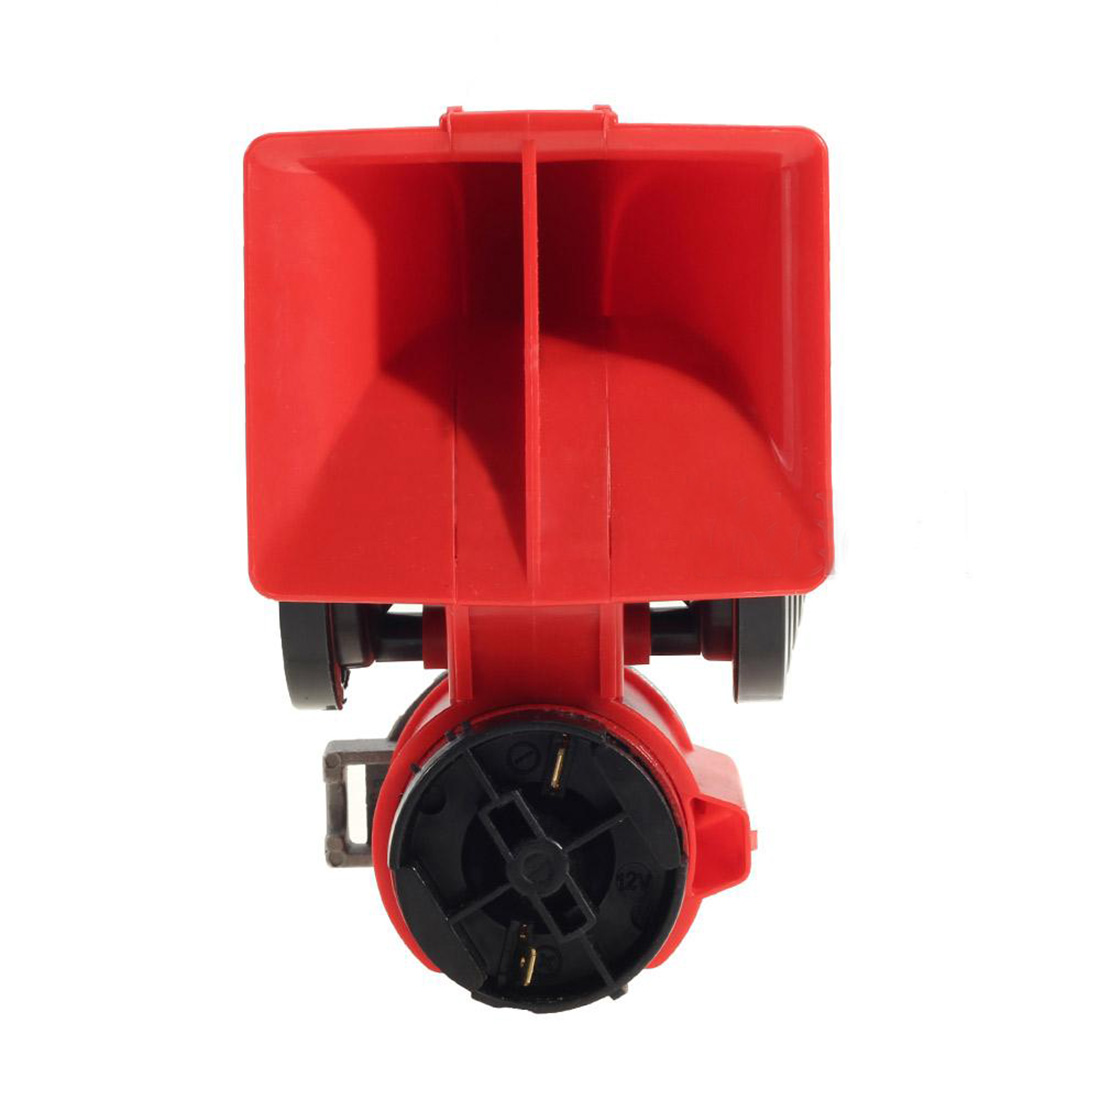 Dewtreetali Car Motorcycle 12v Electric Relay Air Loud Horn 110 125db 760 600hz Black Red In Multi Tone Claxon Horns From Automobiles Motorcycles On